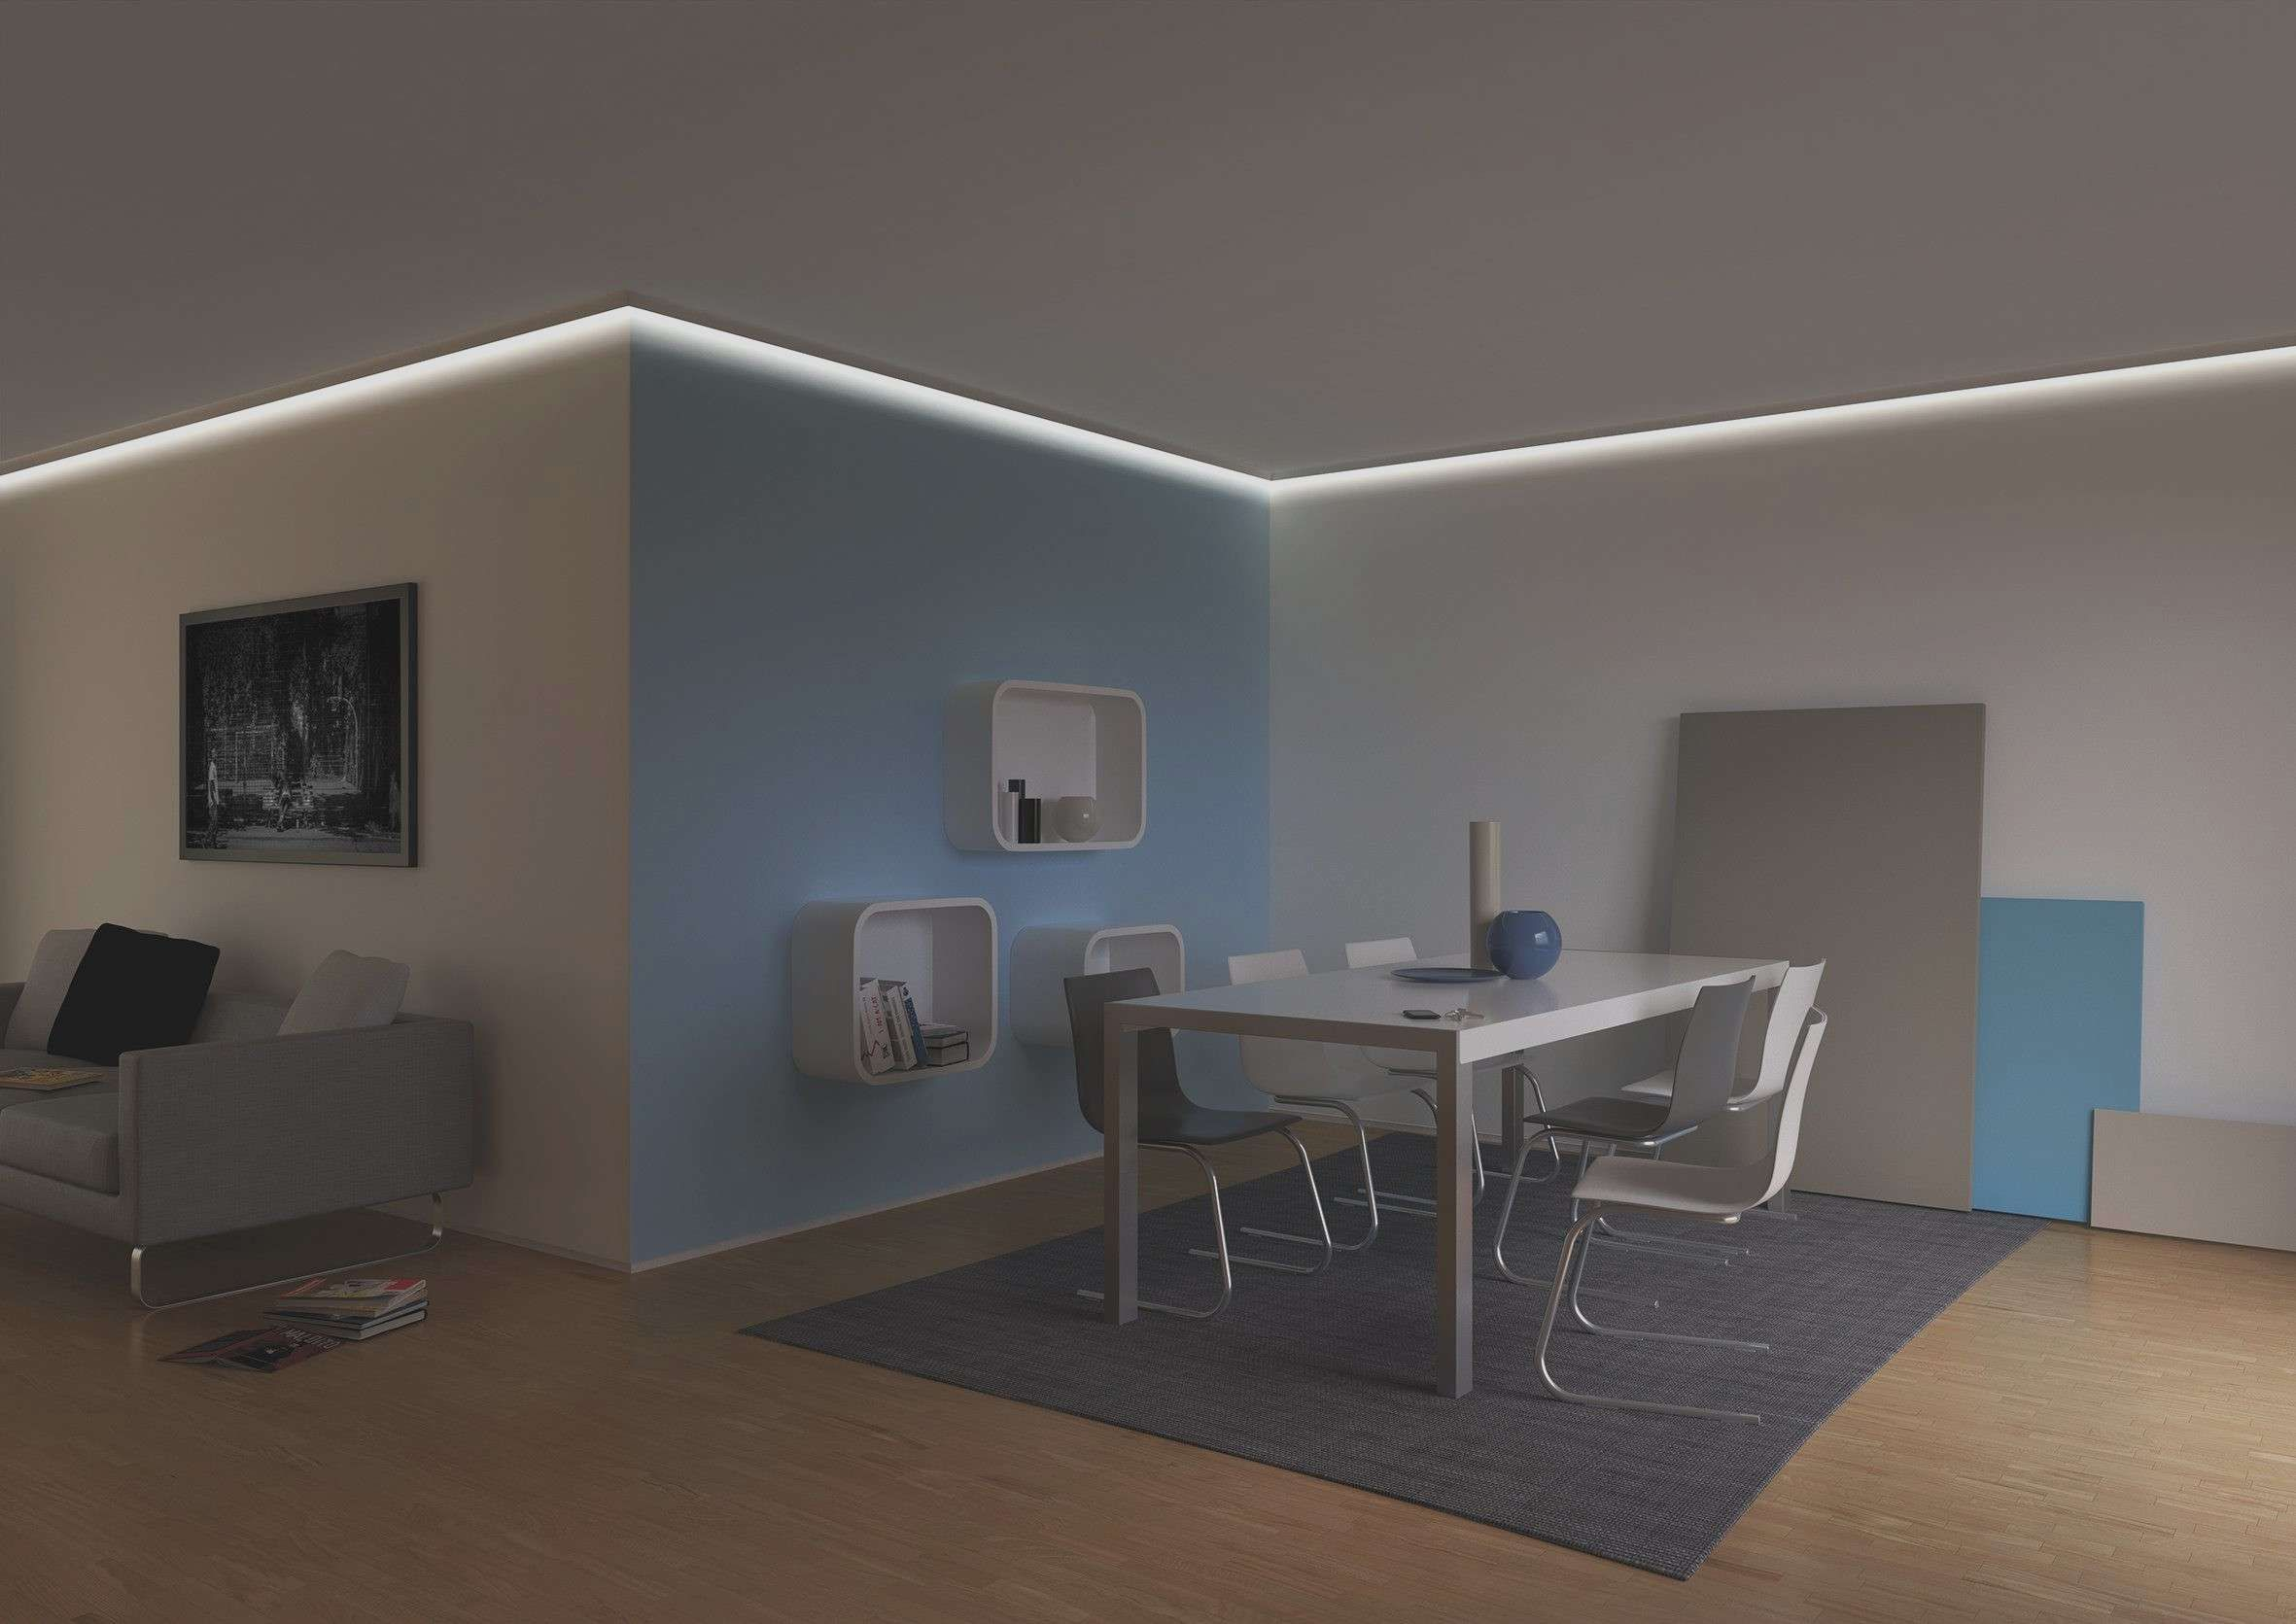 led beleuchtung wohnzimmer wand  Living room lighting, Ceiling